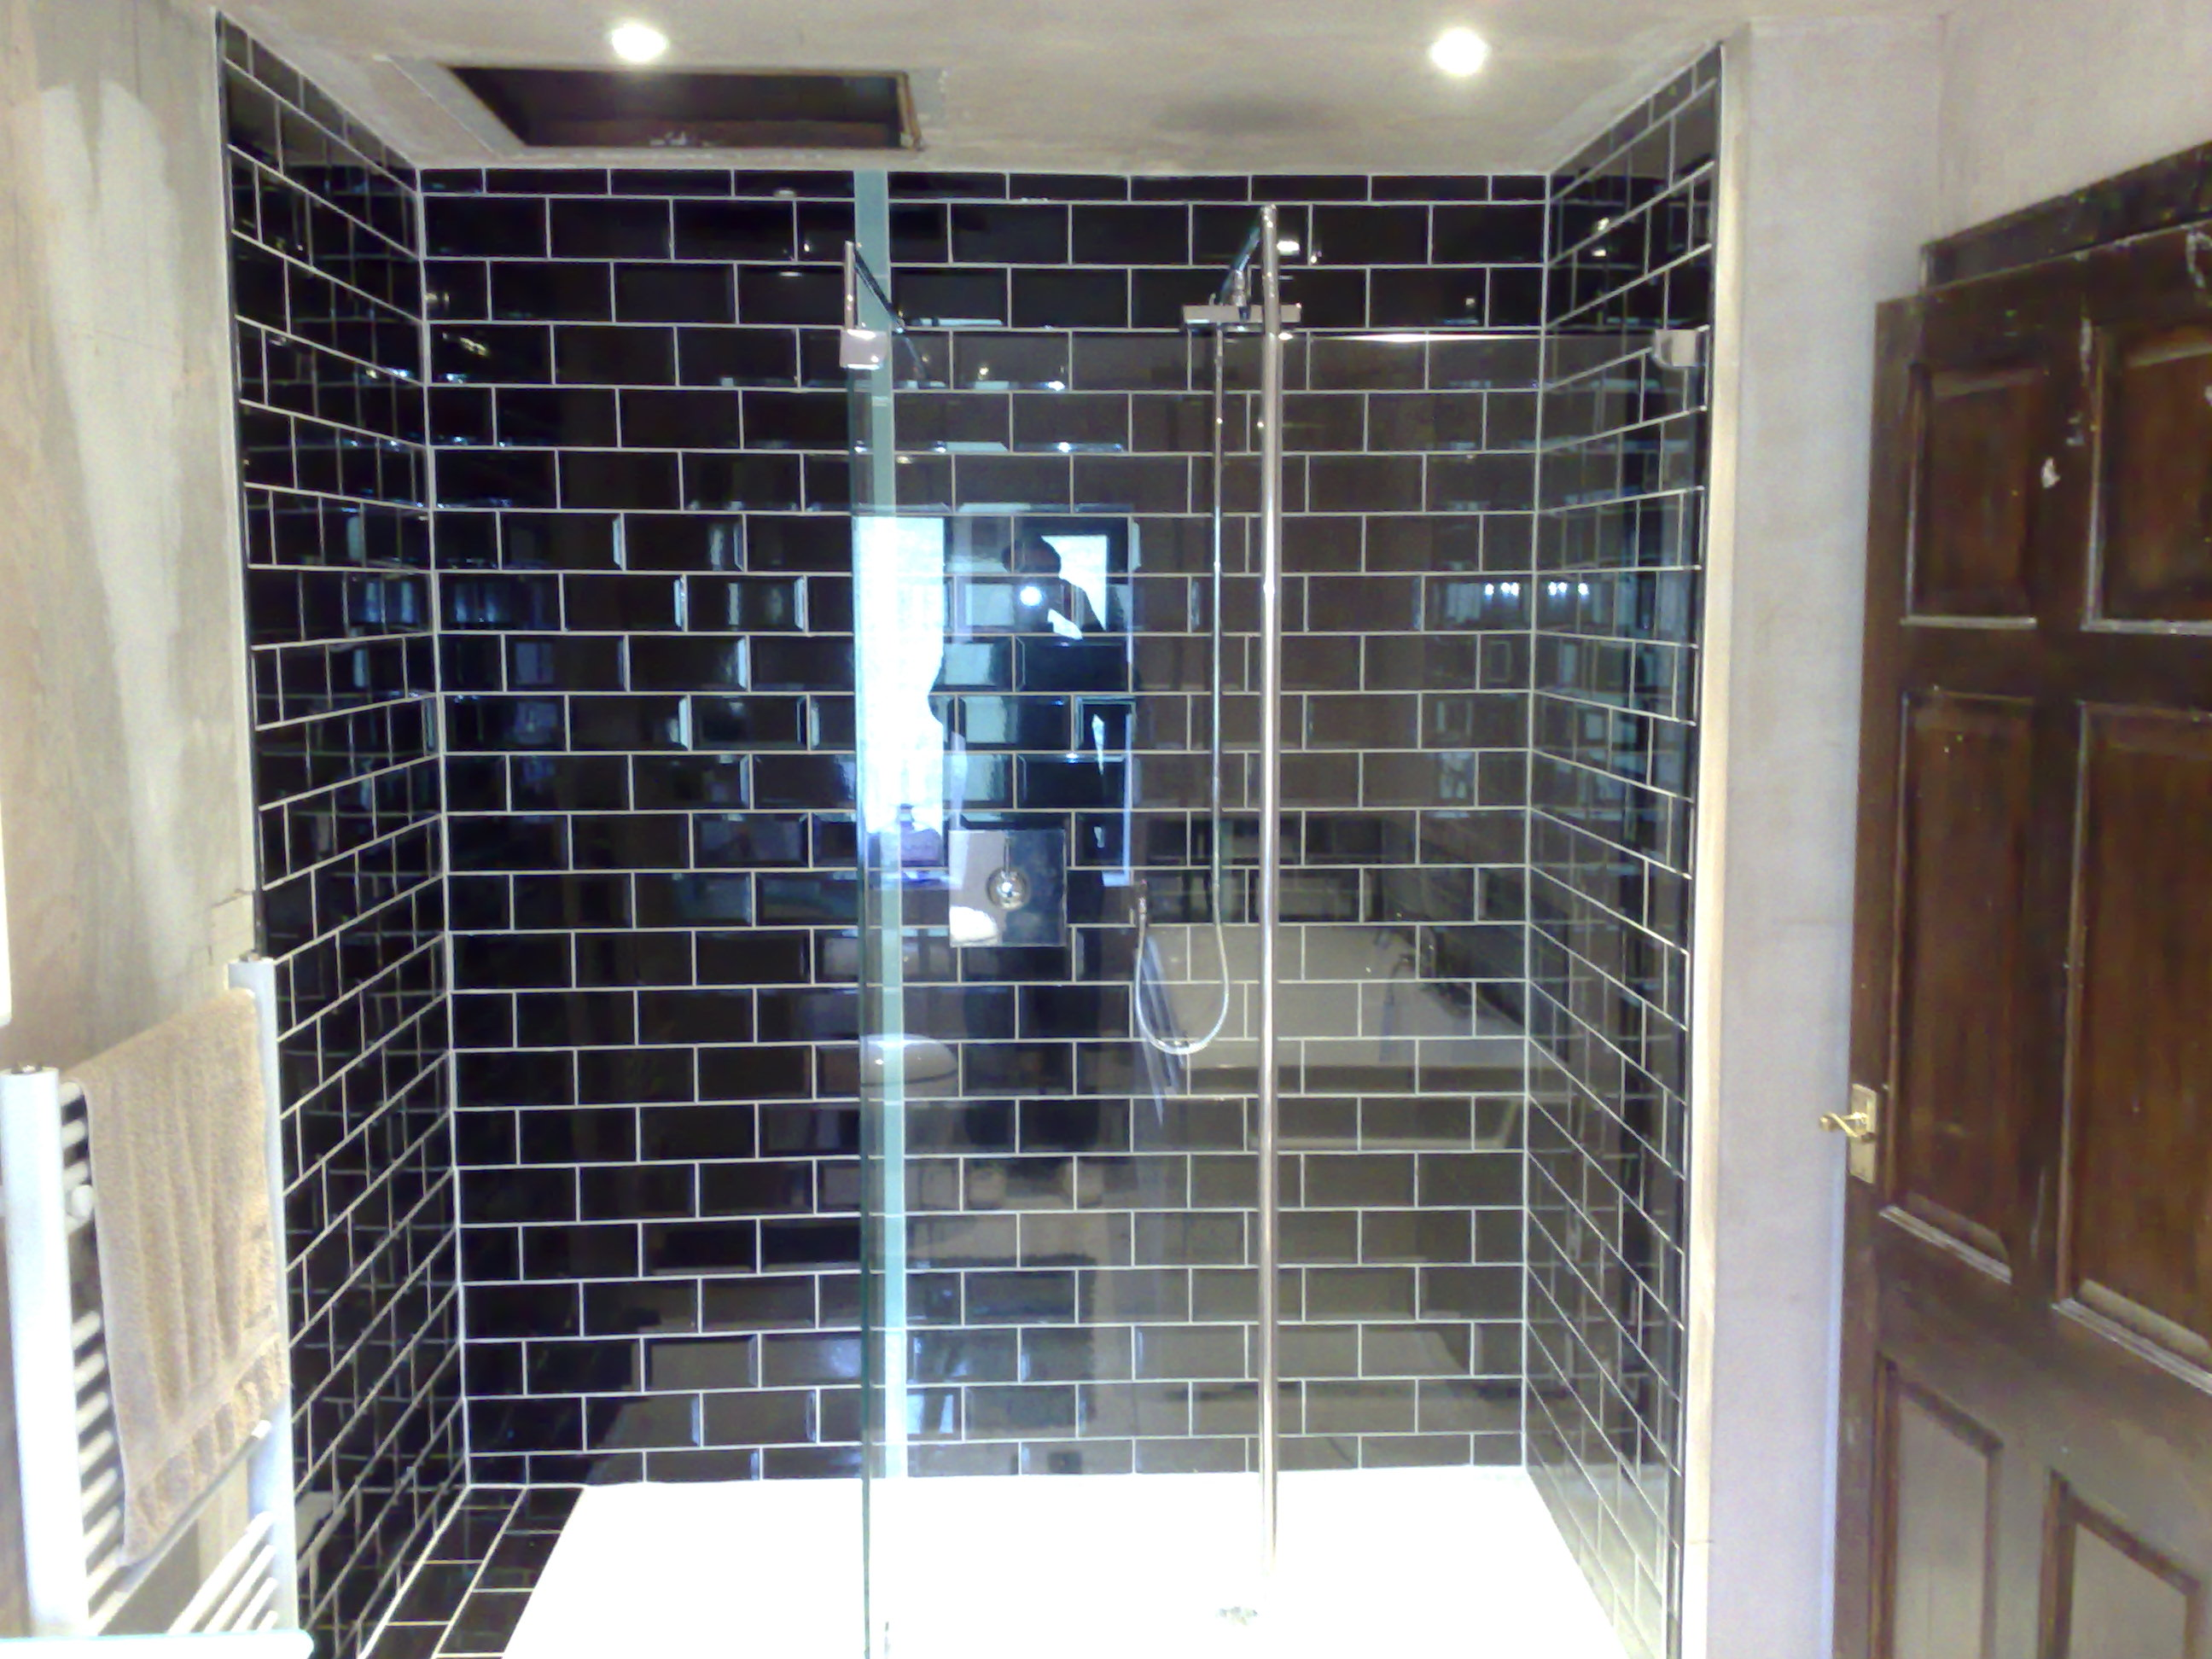 Ensuite Bathroom And Fitting small ensuite designs home ideas kchsus kchsus. bathroom gallery